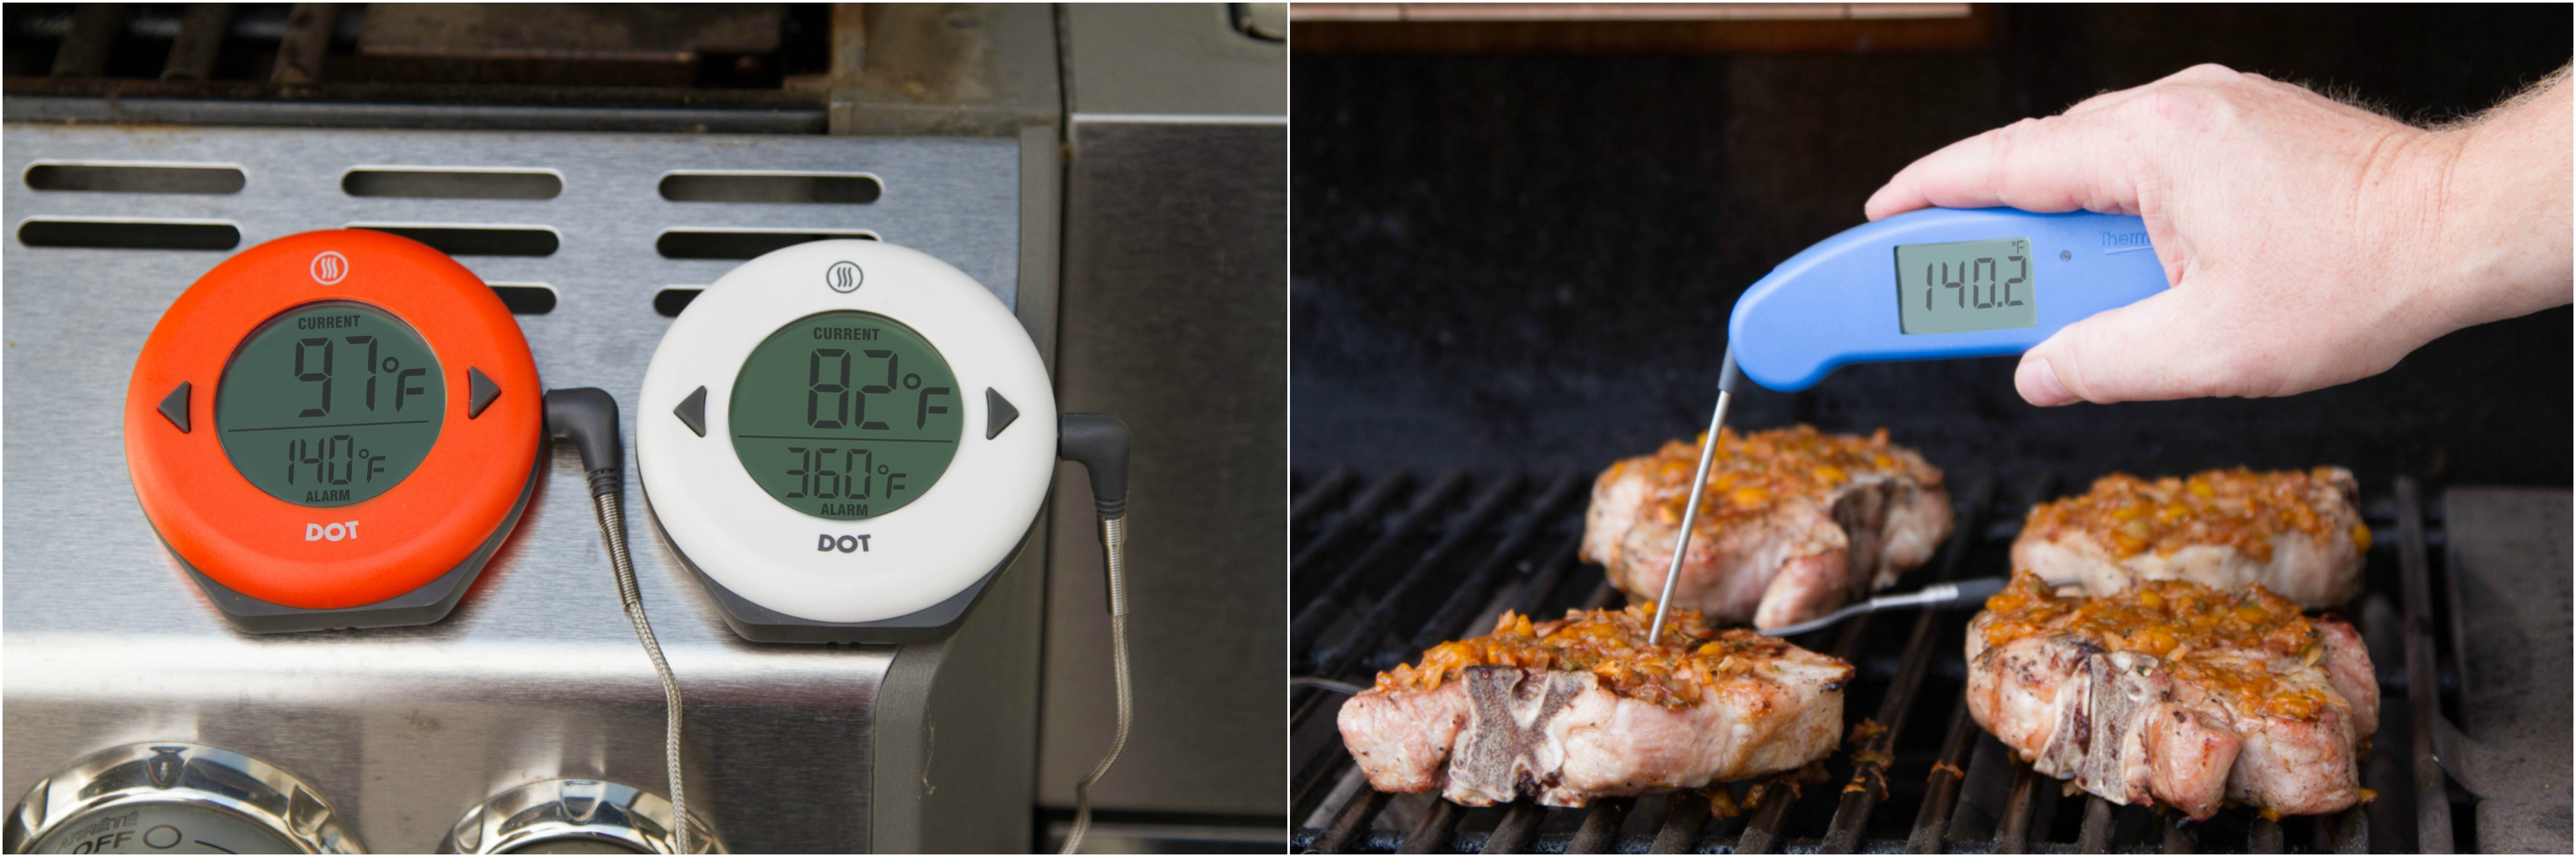 Tracking temperatures while grilling pork chops, spot-checking internal temperatures with a Thermapen Mk4